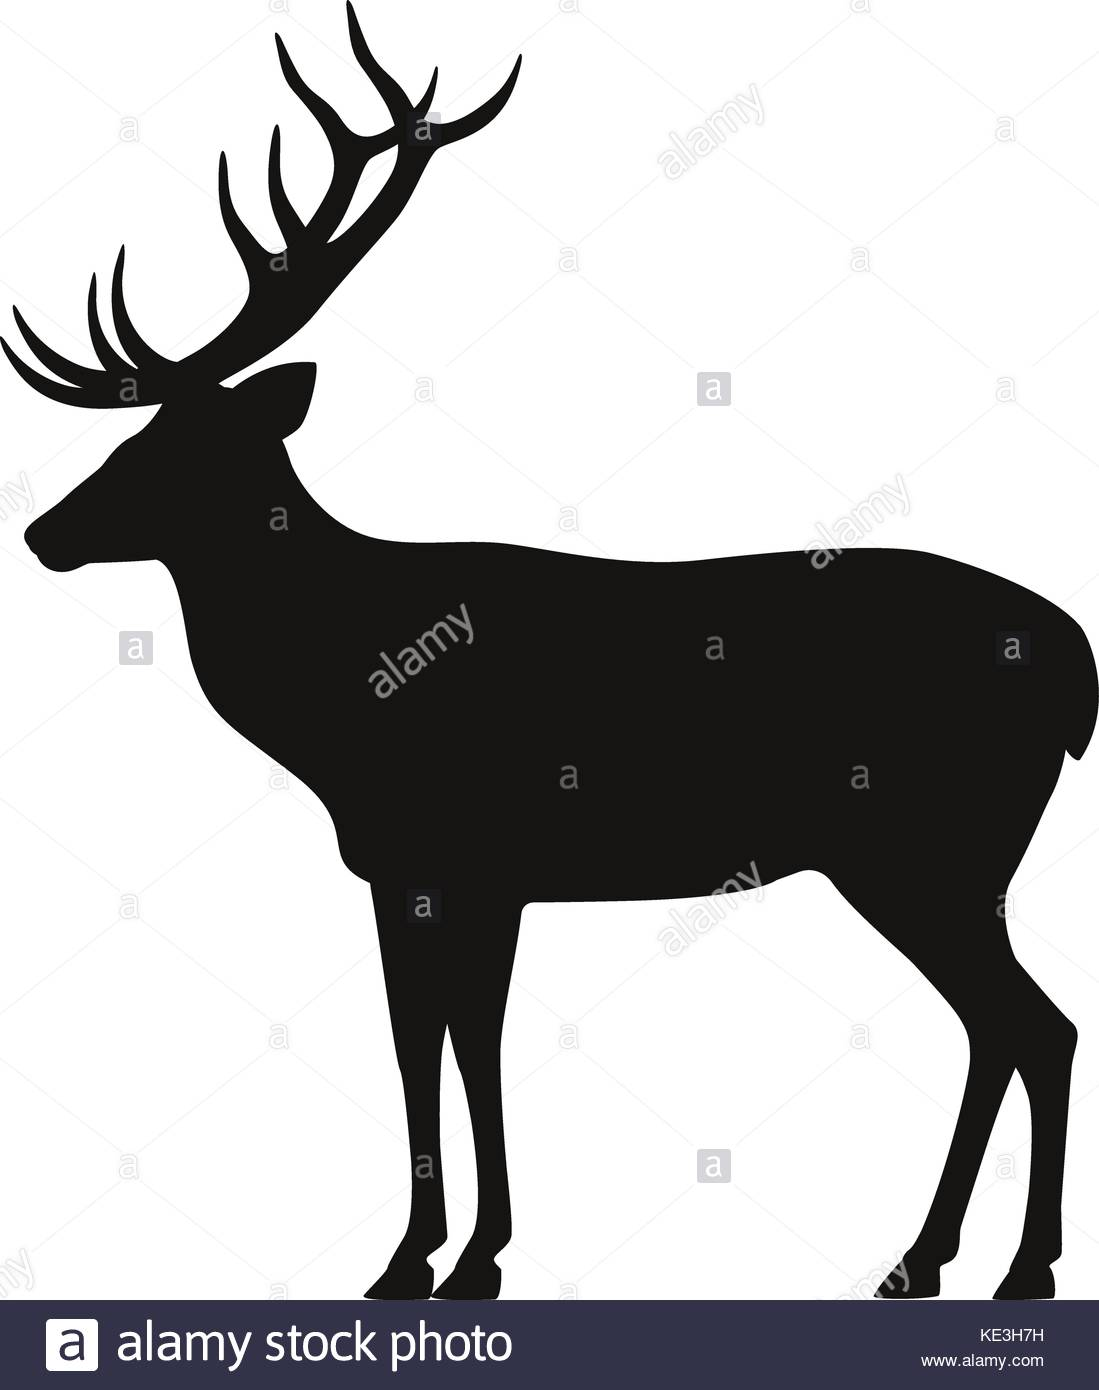 1099x1390 Vector Black Silhouette Horned Deer Icon Side View Stock Vector